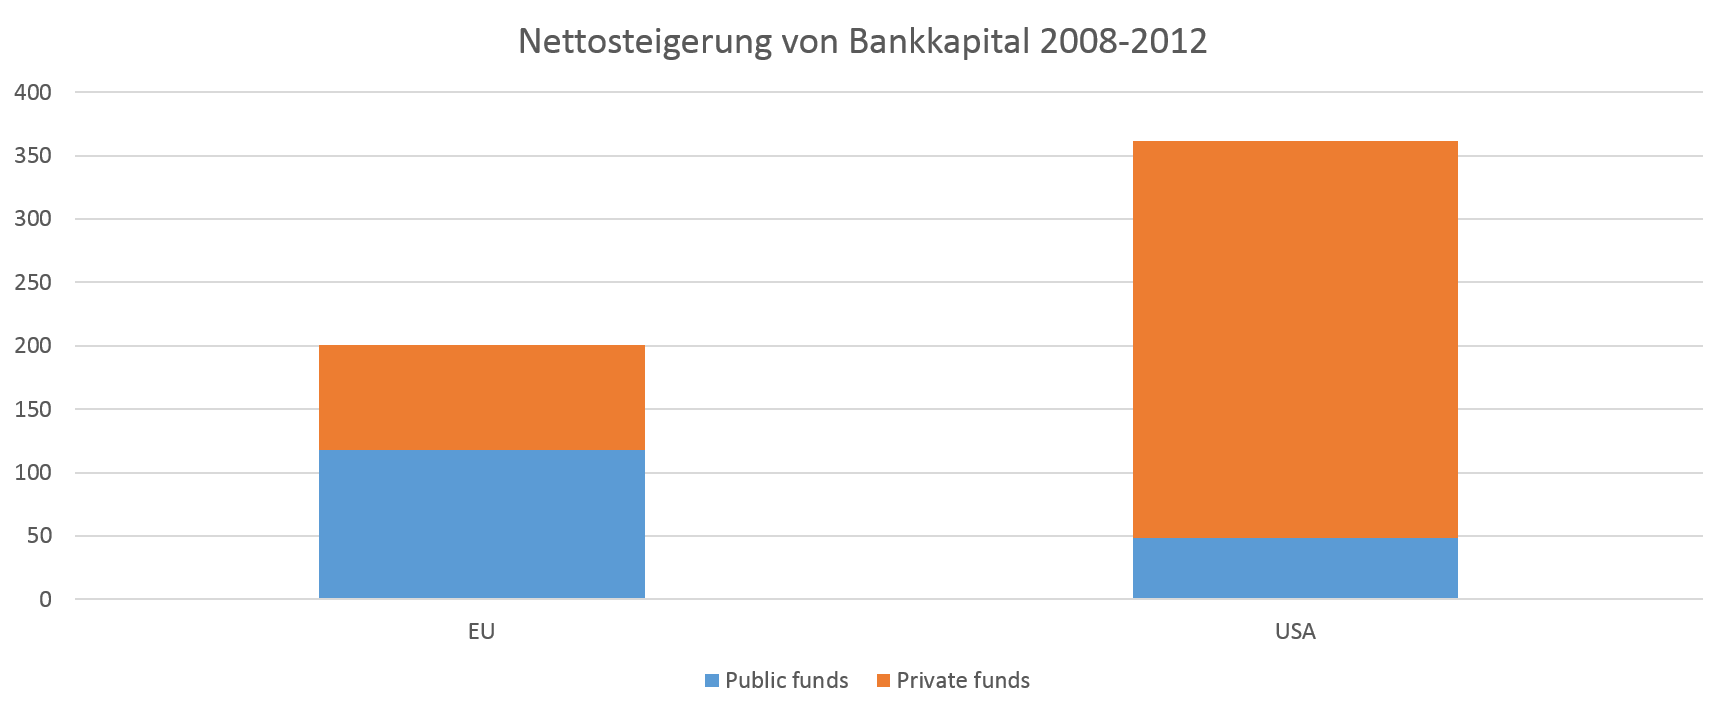 net capital increase banks 2008 2012